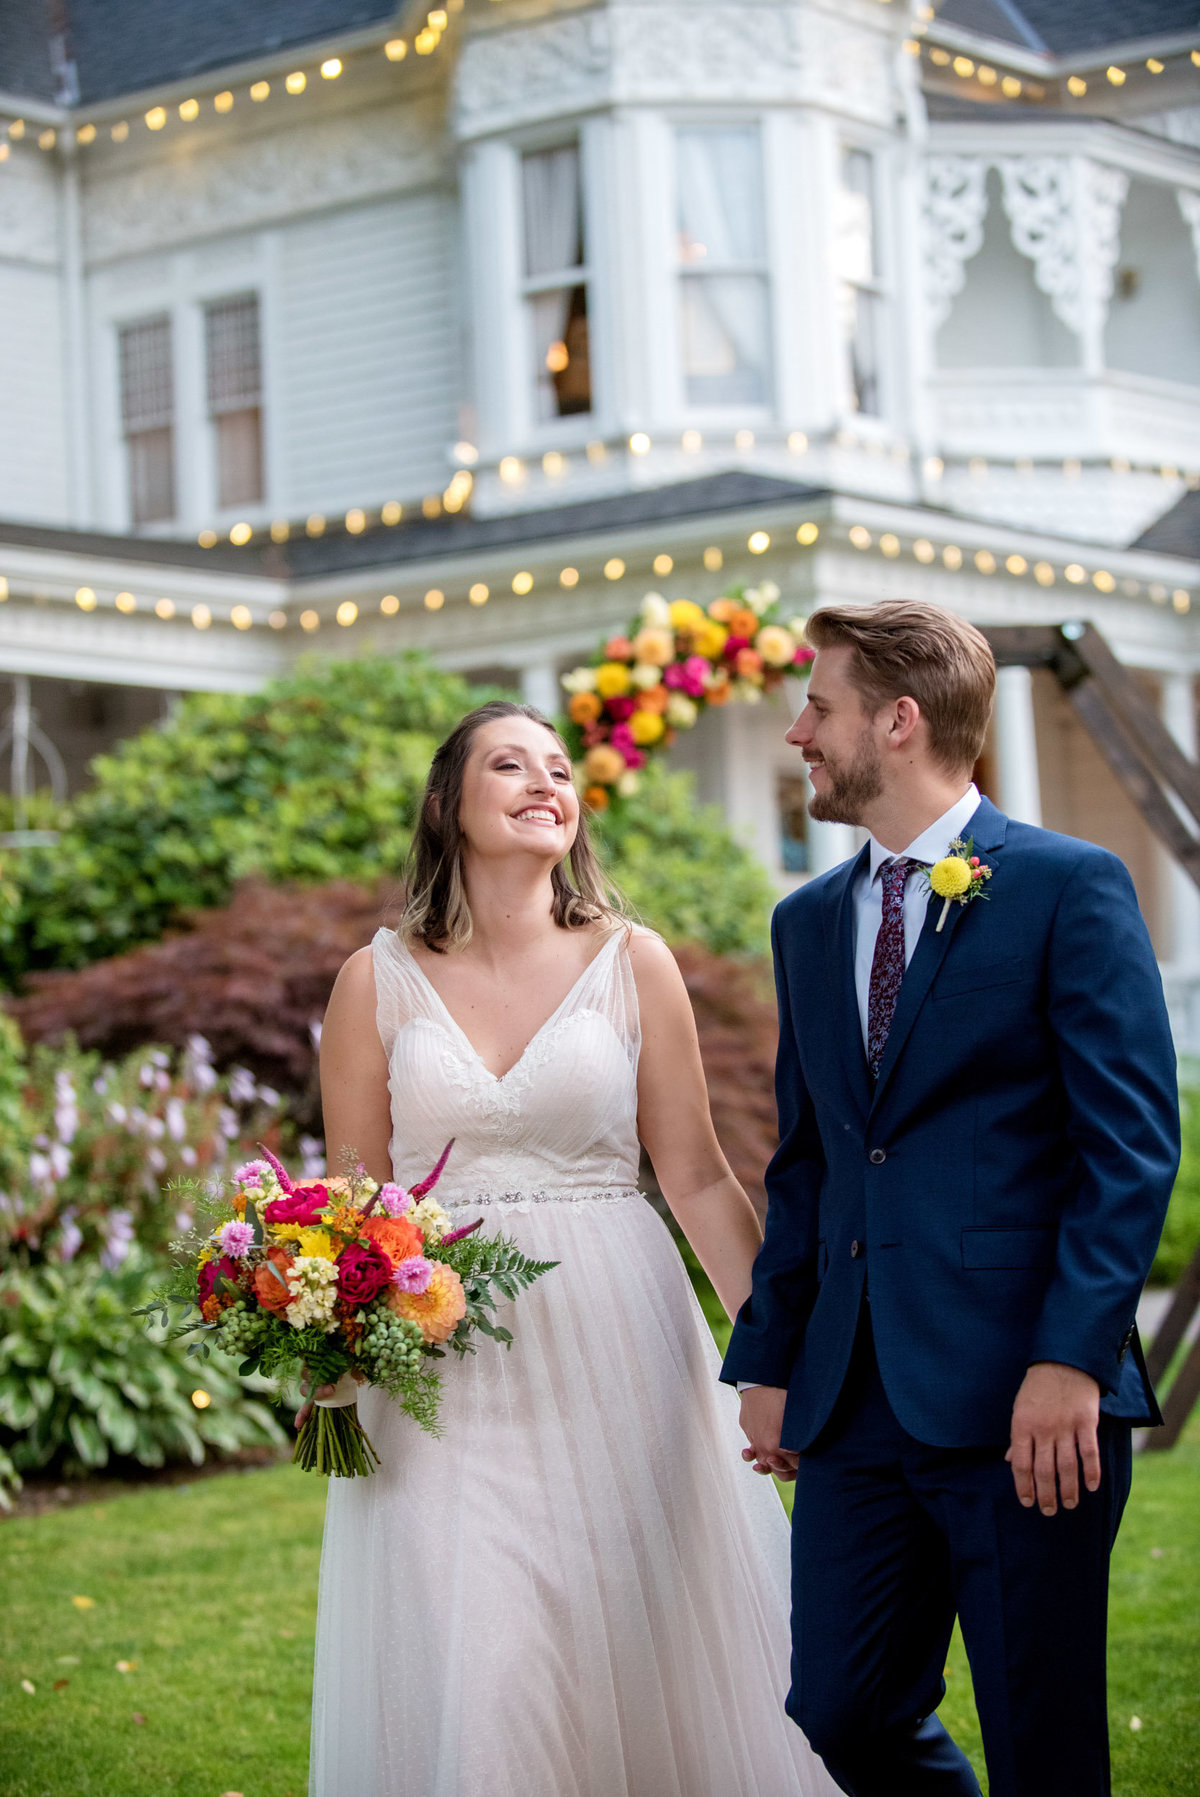 Victorian Belle Mansion Wedding190715-13